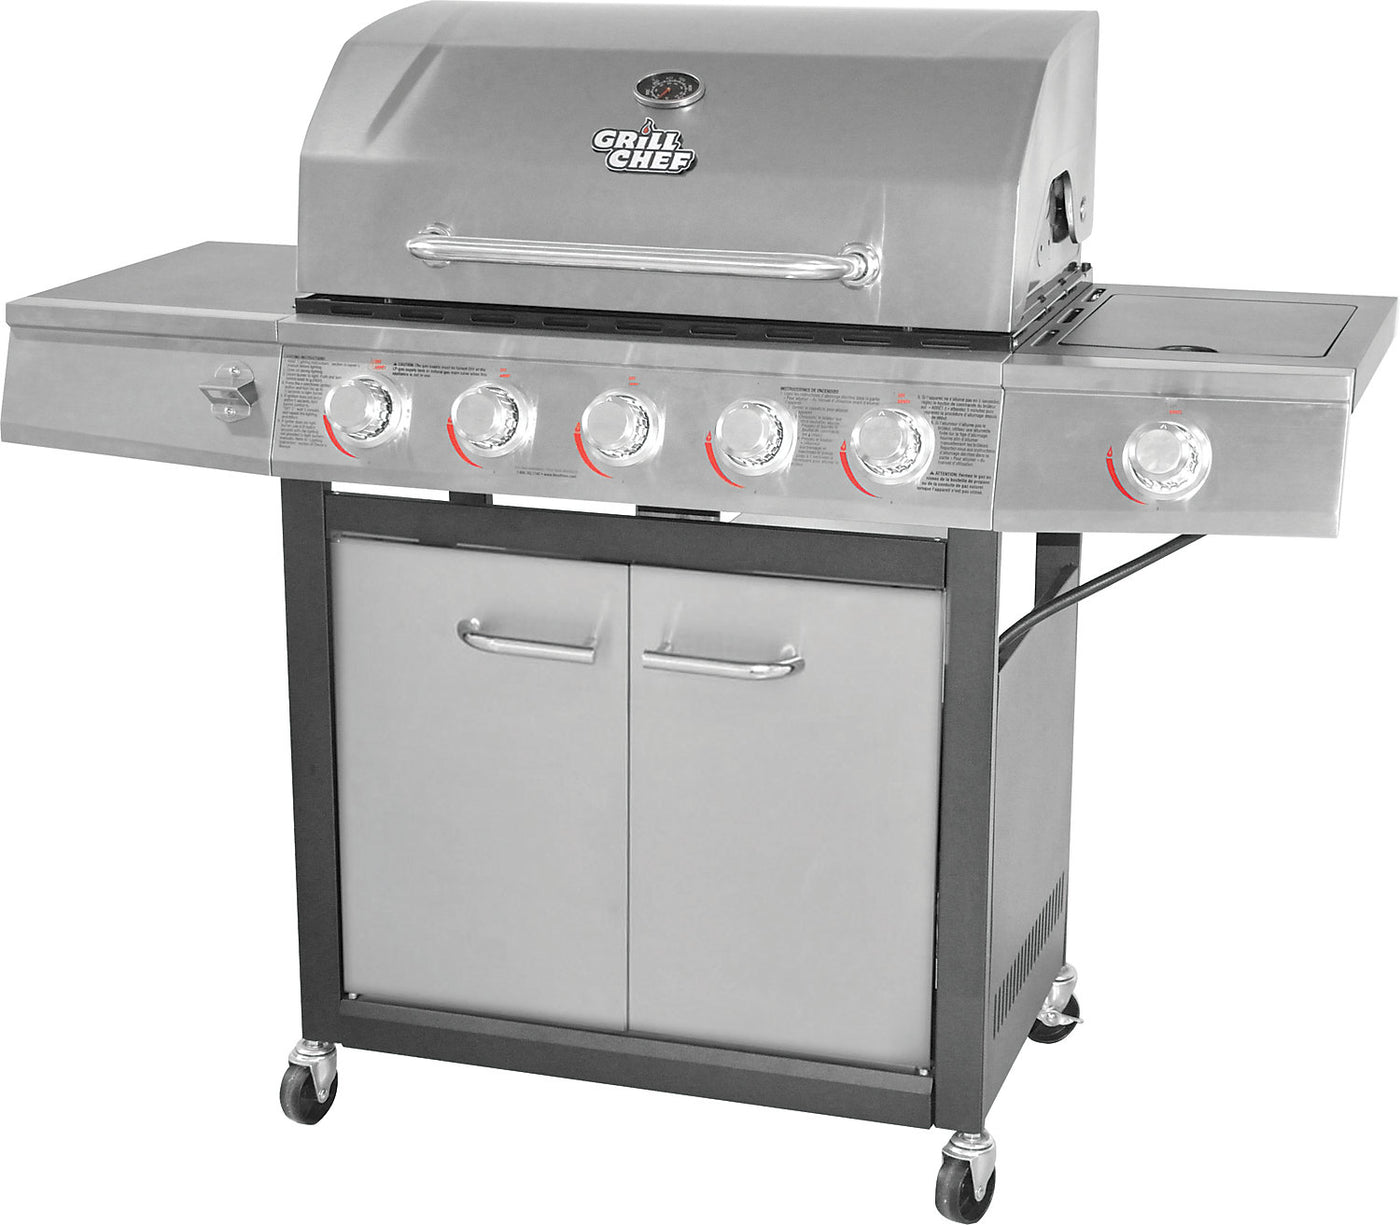 Grill Chef 72000 Btu Dual Fuel Barbecue Gc1088 The Brick